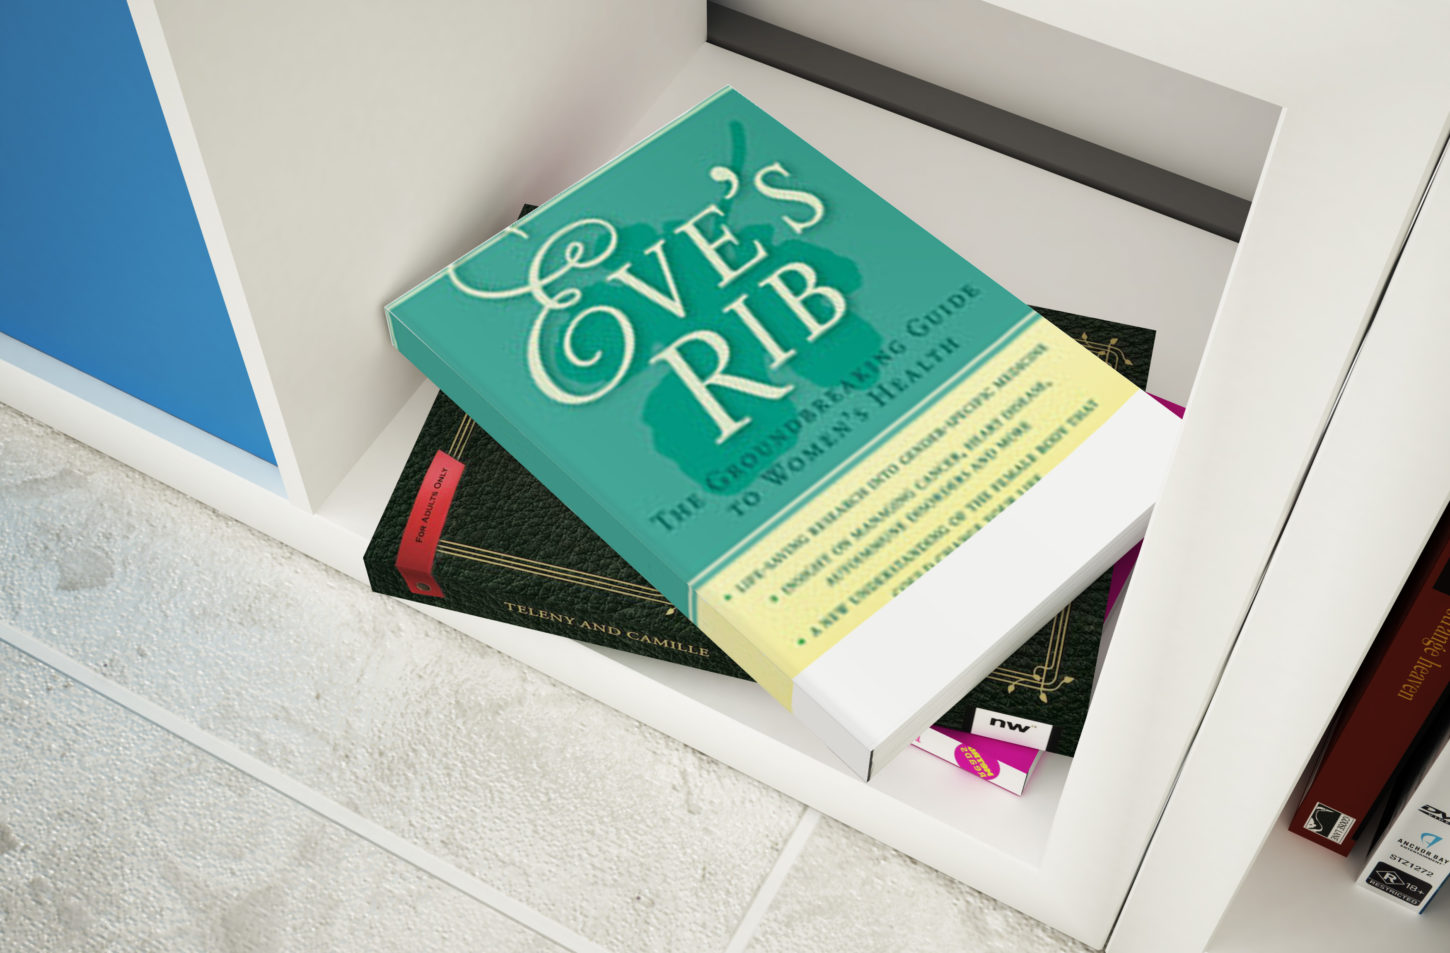 Eve's Rib: The Groundbreaking Guide To Women's Health